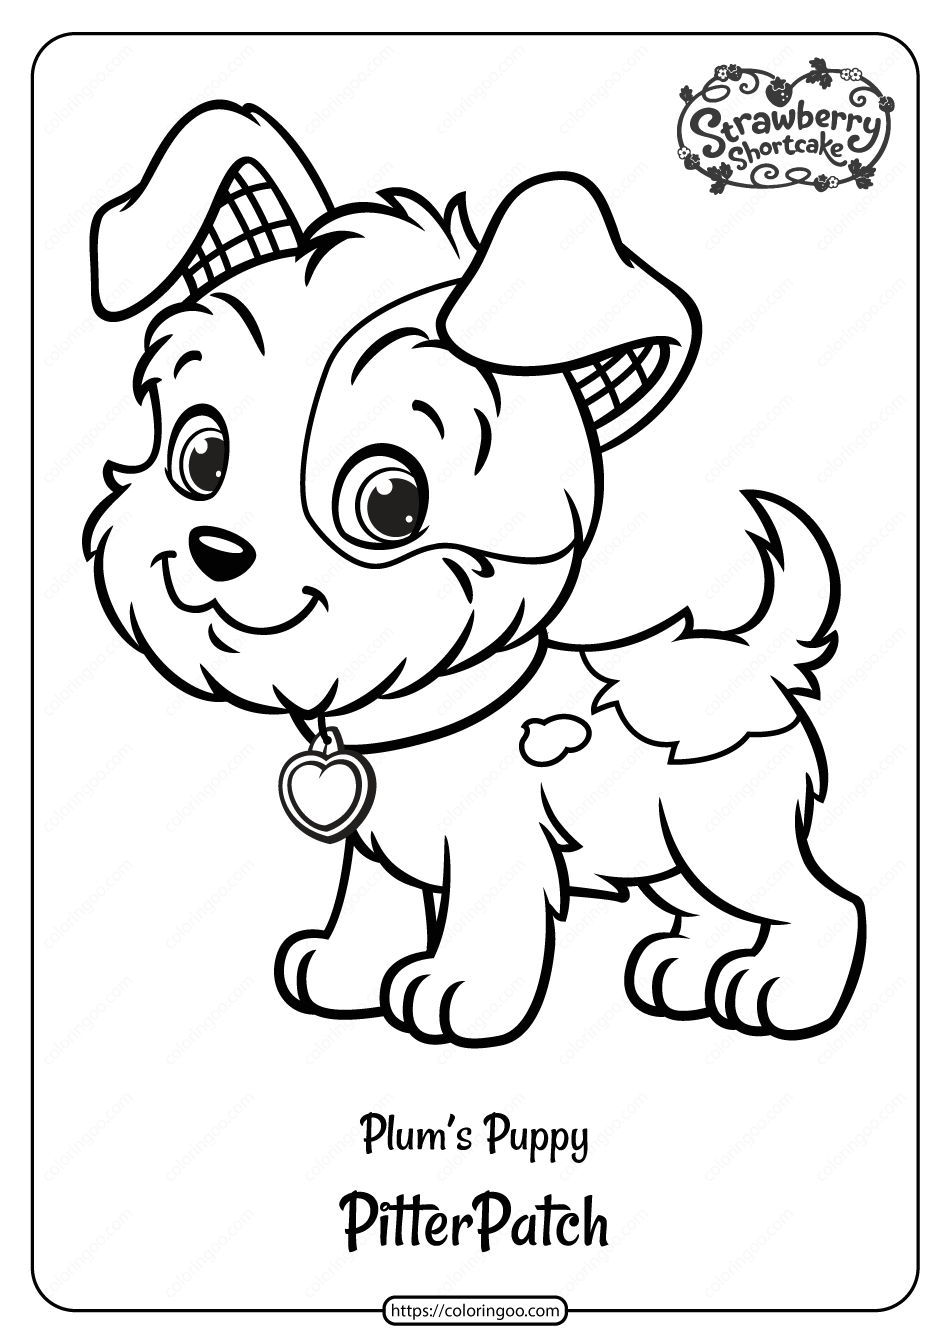 Free Printable Plum S Puppy Pitterpatch Coloring Page Strawberry Shortcake Coloring Pages Puppy Coloring Pages Dog Coloring Page [ 1344 x 950 Pixel ]